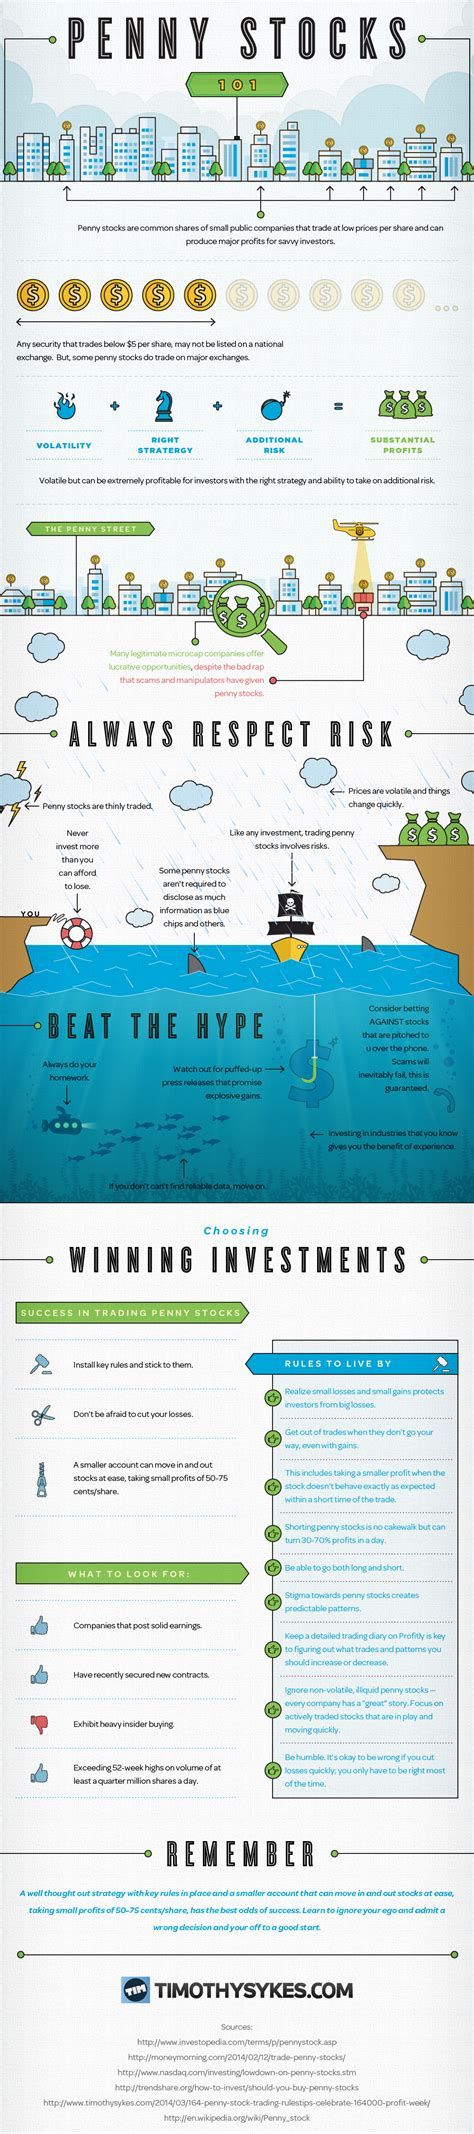 penny stocks  infographic timothy sykes